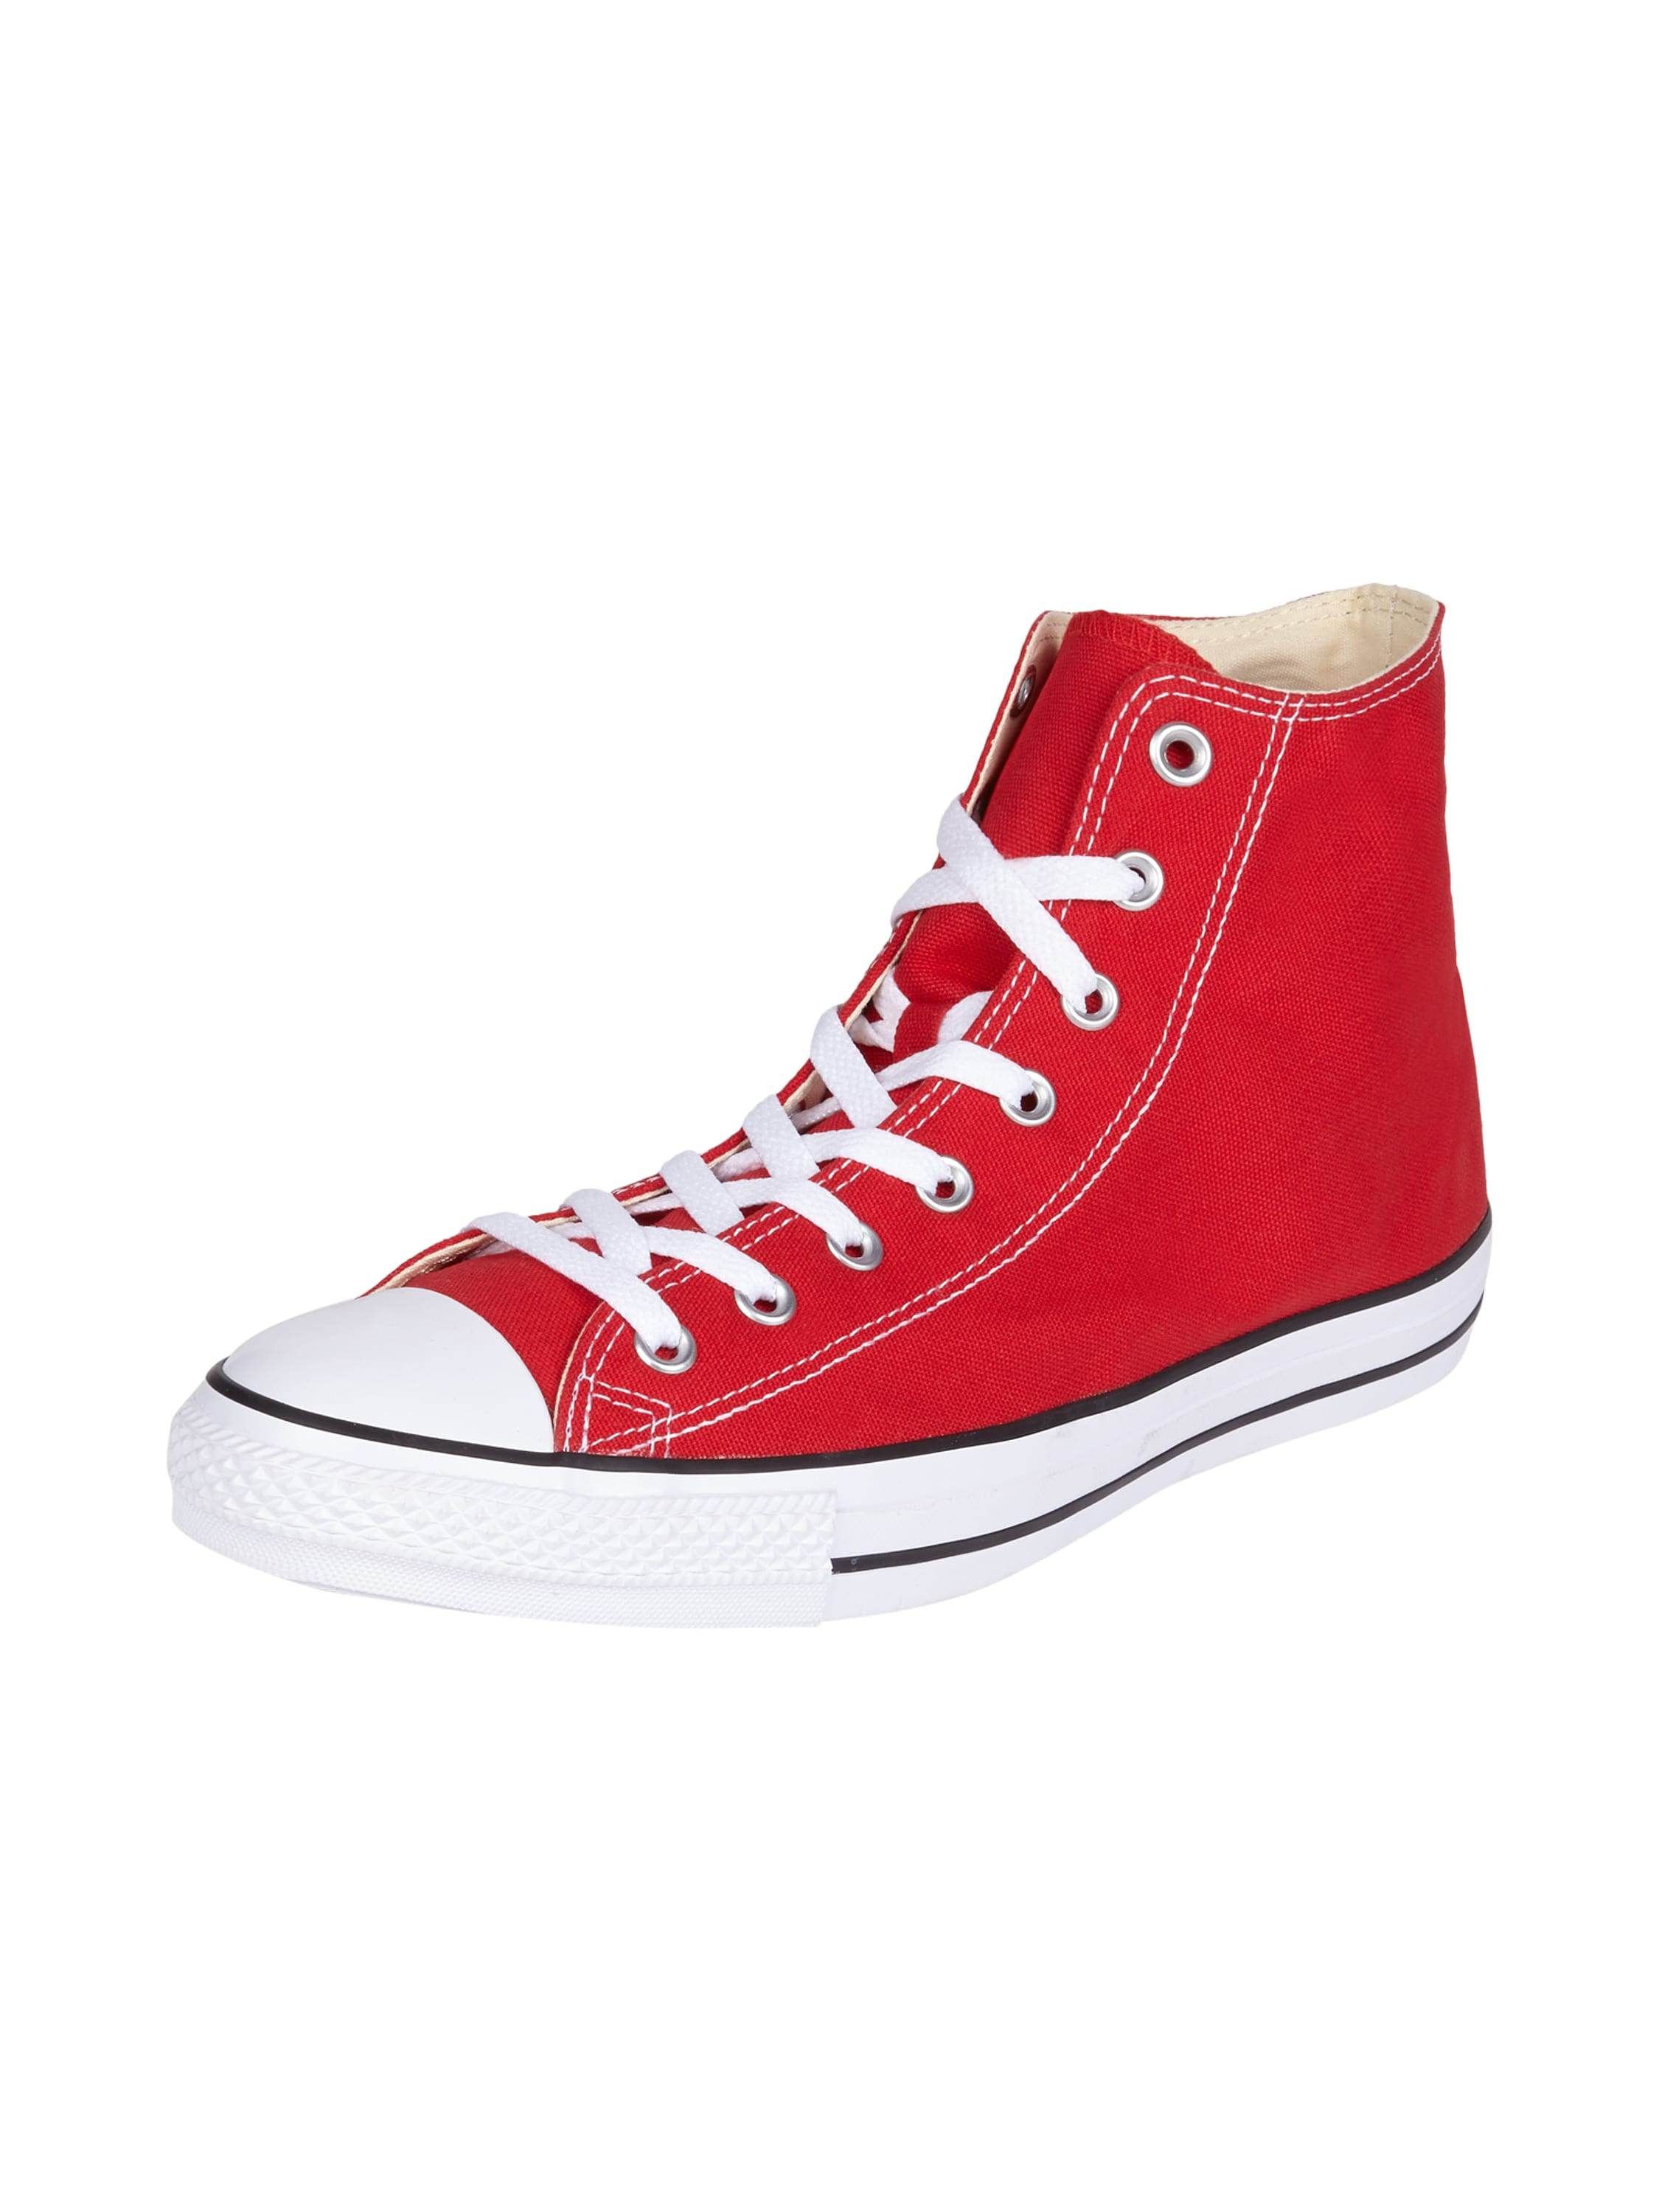 converse chucks aus canvas von converse in rot online. Black Bedroom Furniture Sets. Home Design Ideas